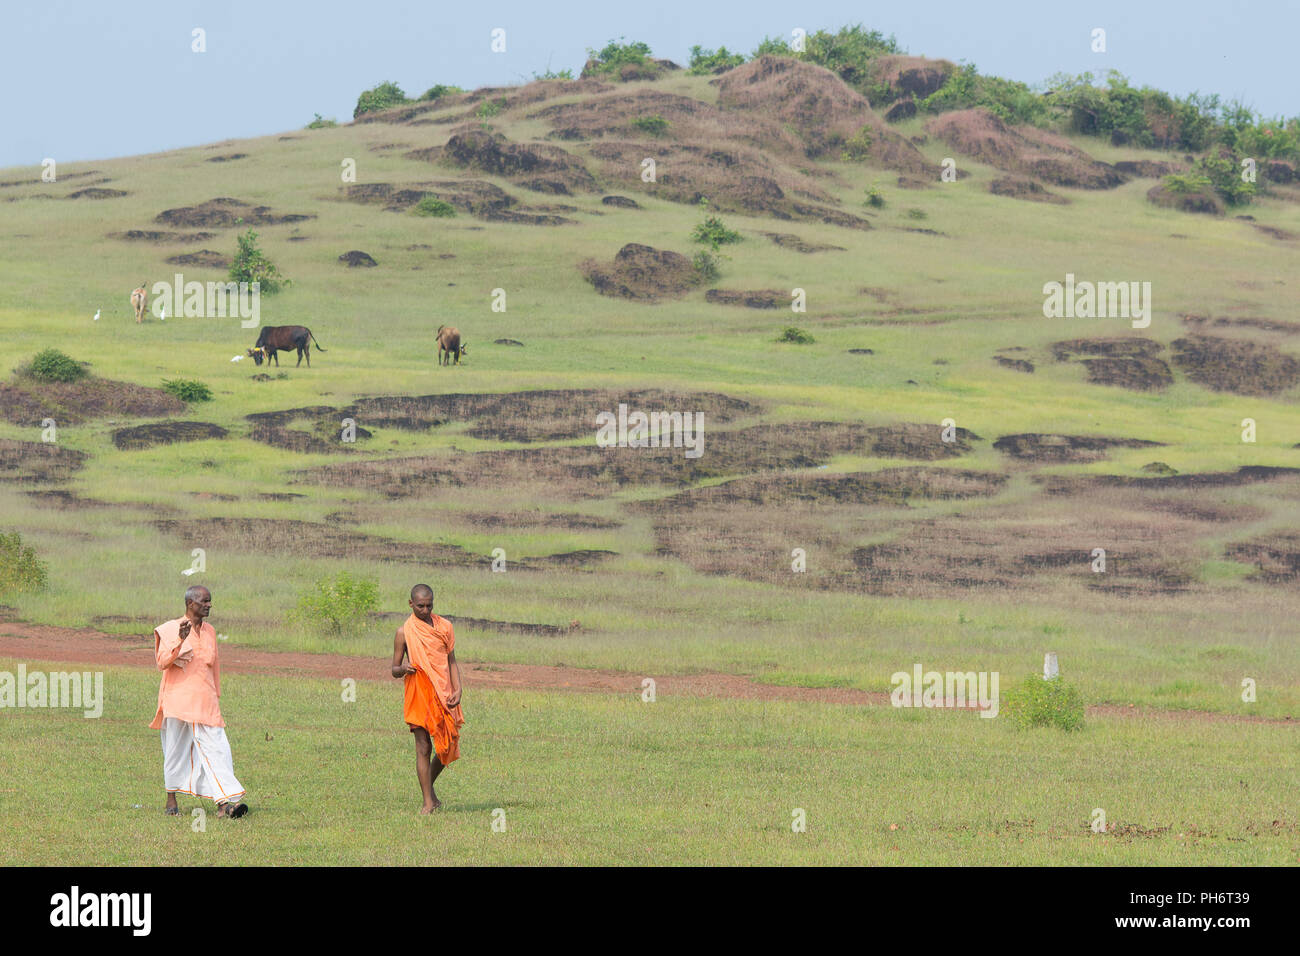 Goa, India - July 8, 2018 - Two hinduist priests walking through hills in Goa passing holy cows - Stock Image